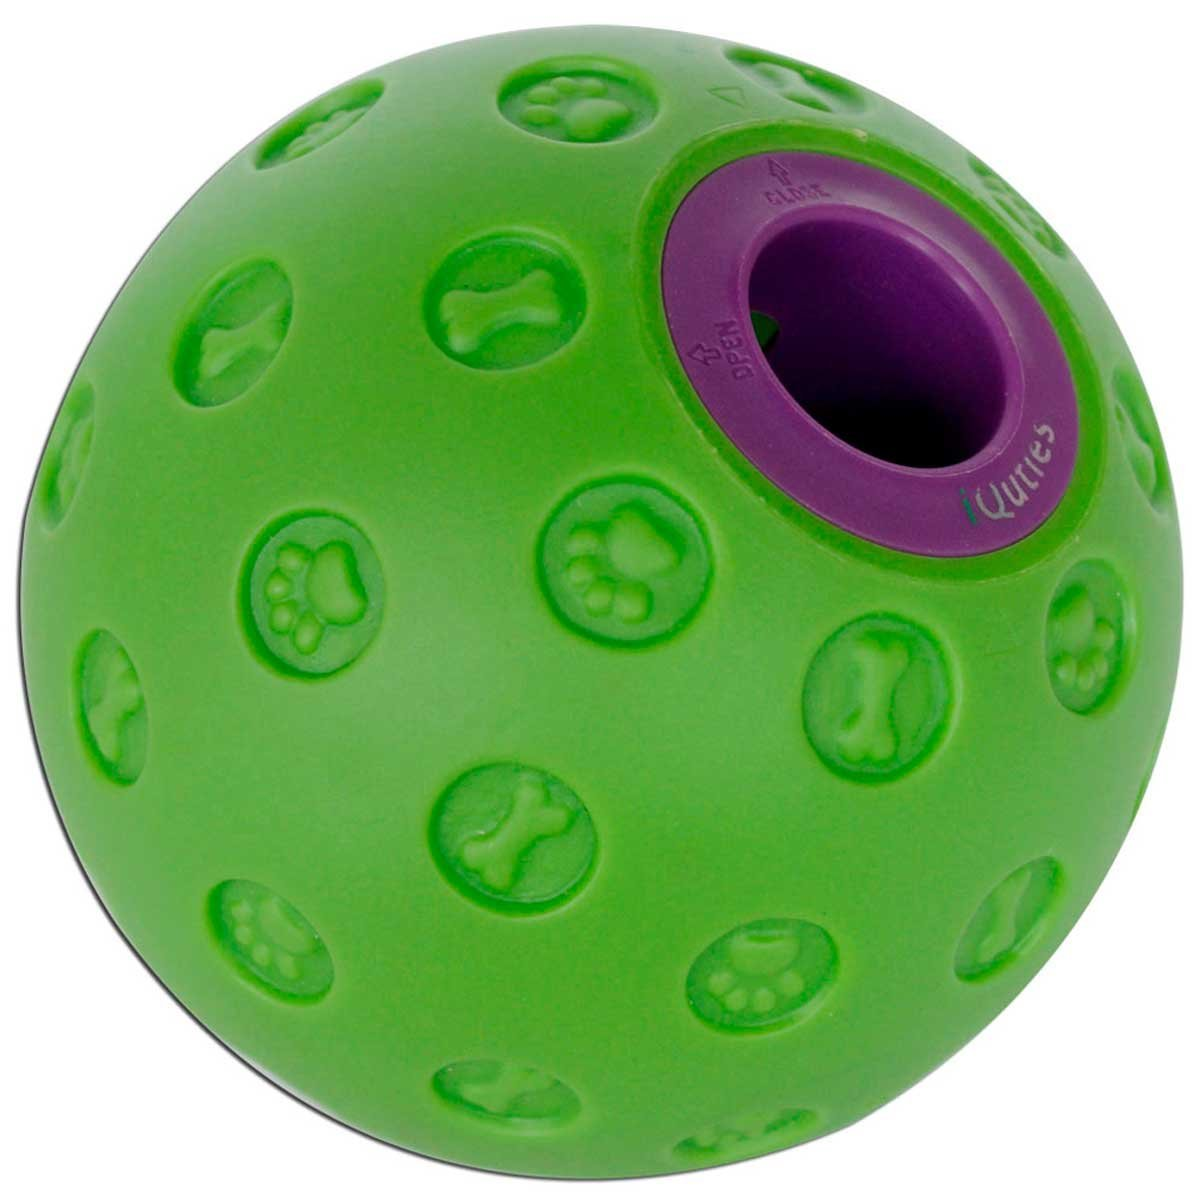 IQties dog puzzle ball.